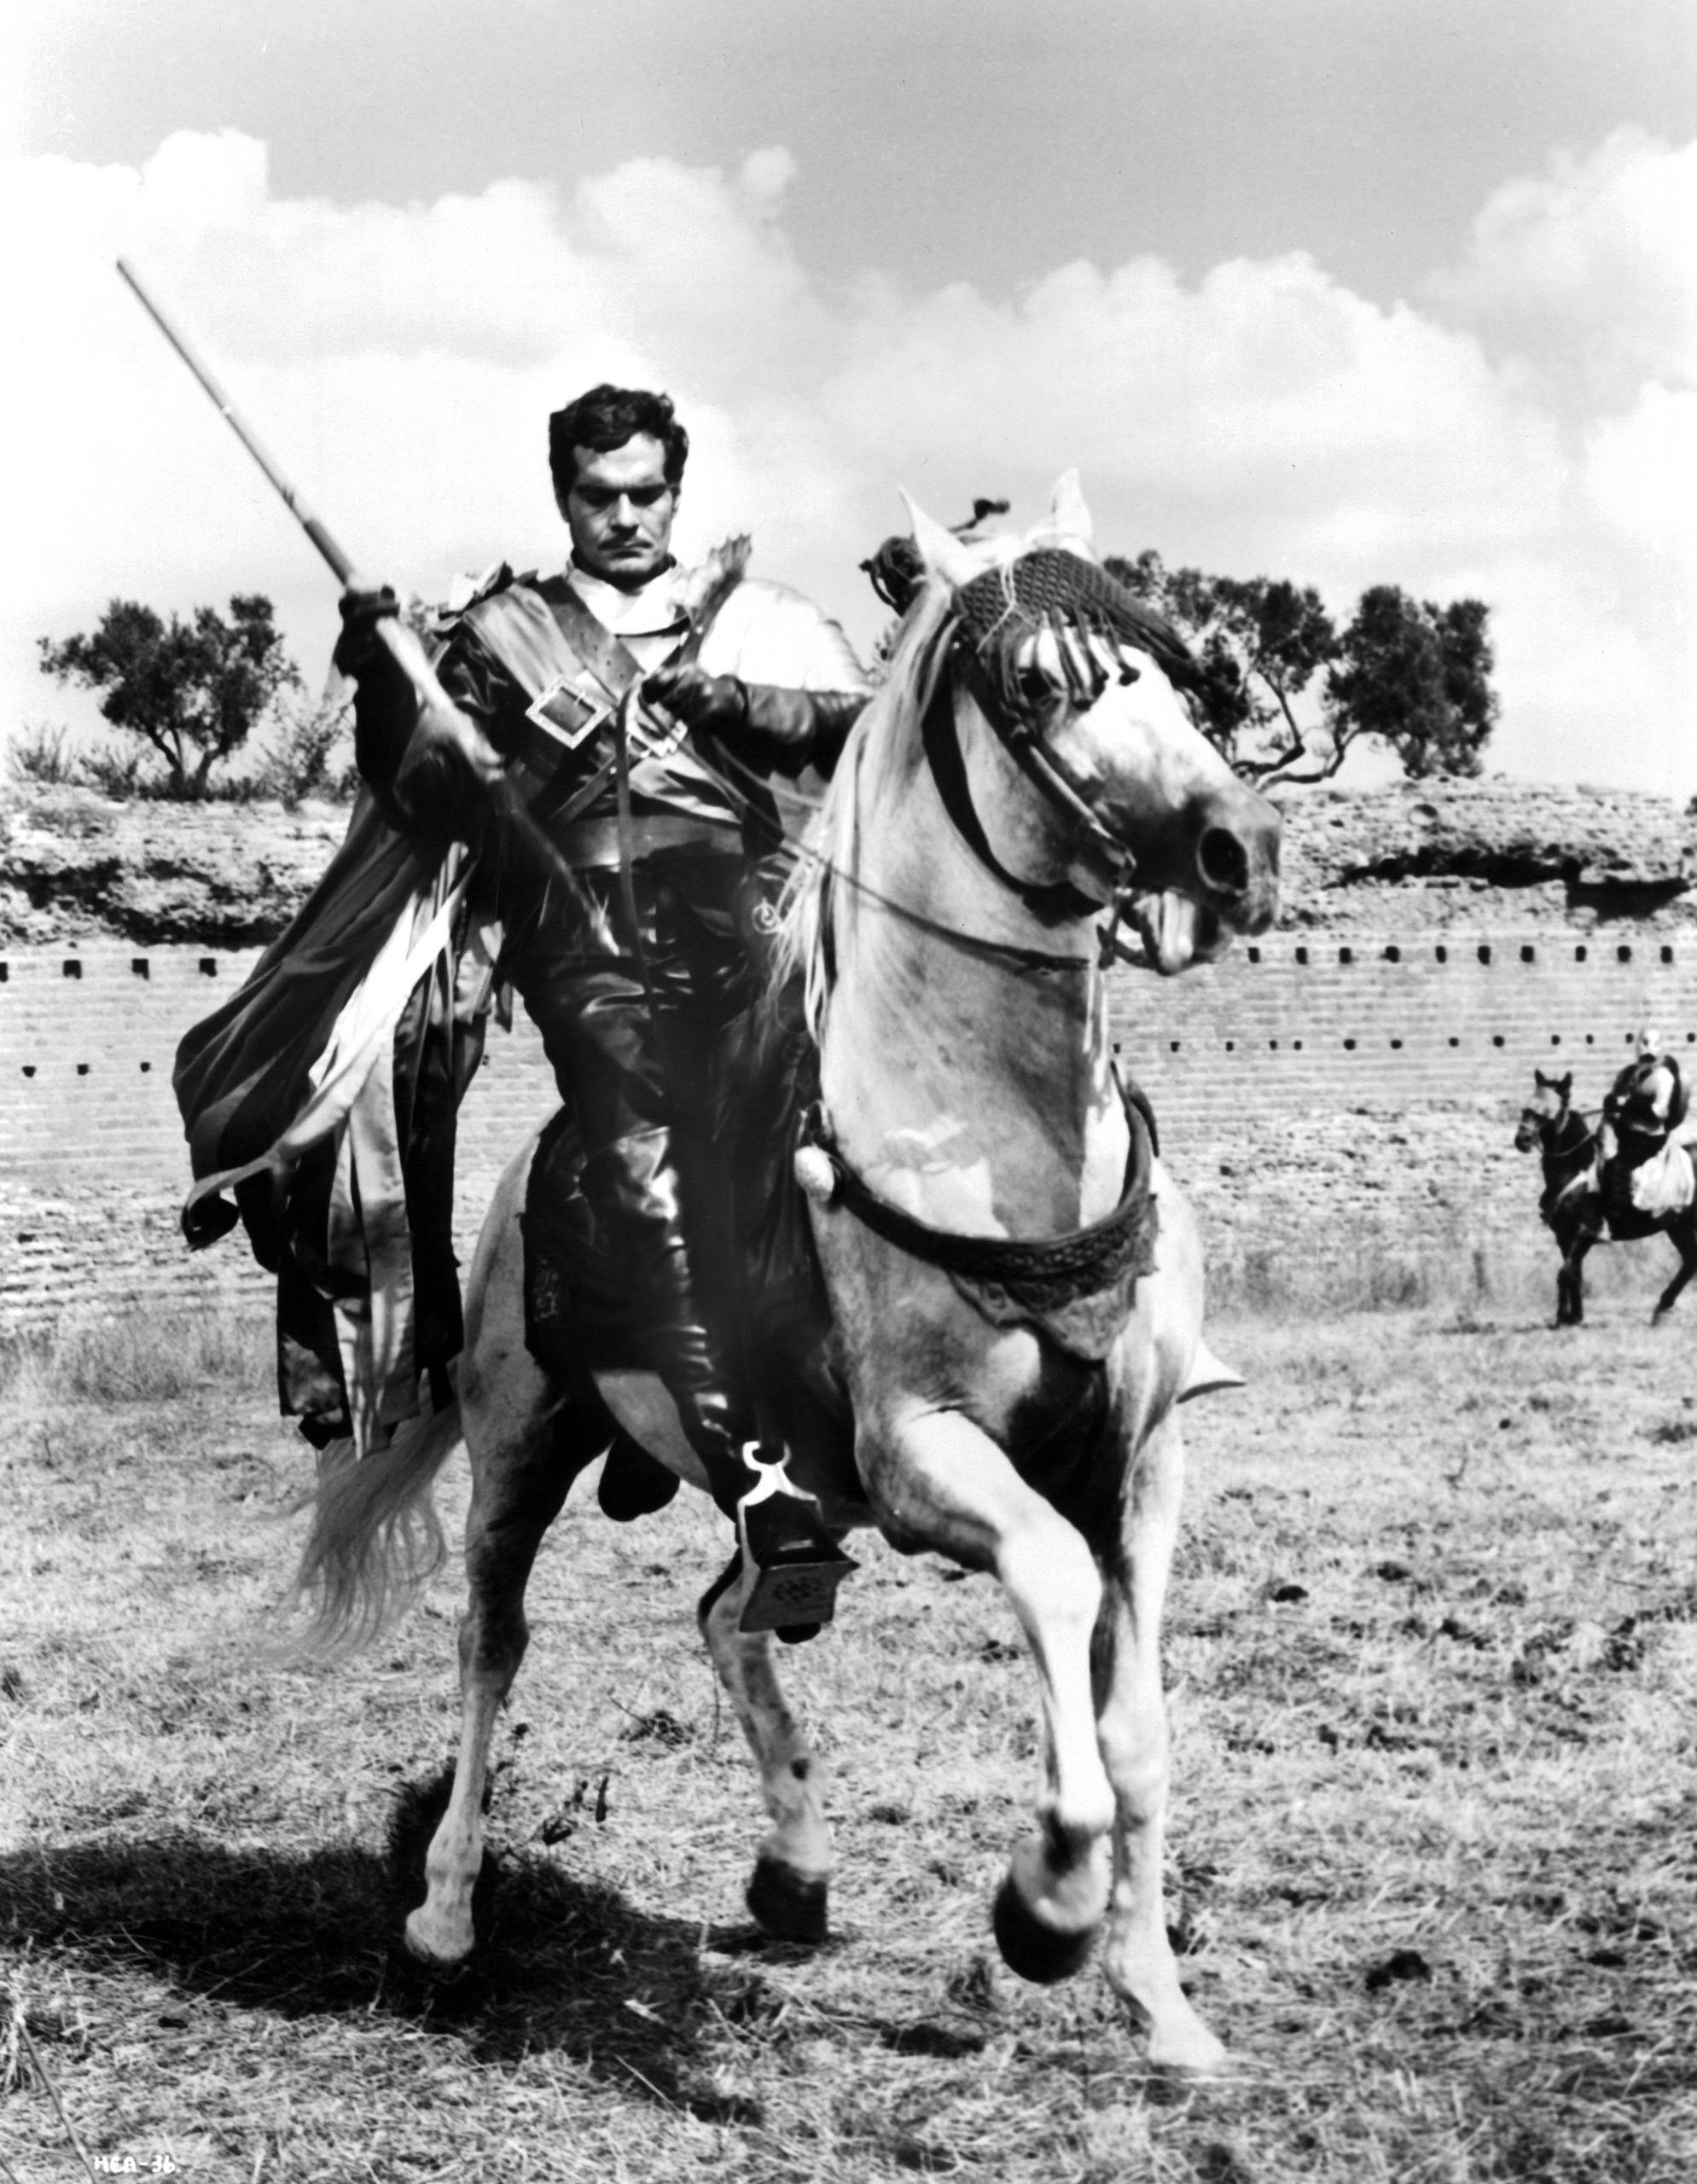 Omar Sharif as Prince Rodrigo Fernandez on the set of the movie More Than a Miracle, 1967.